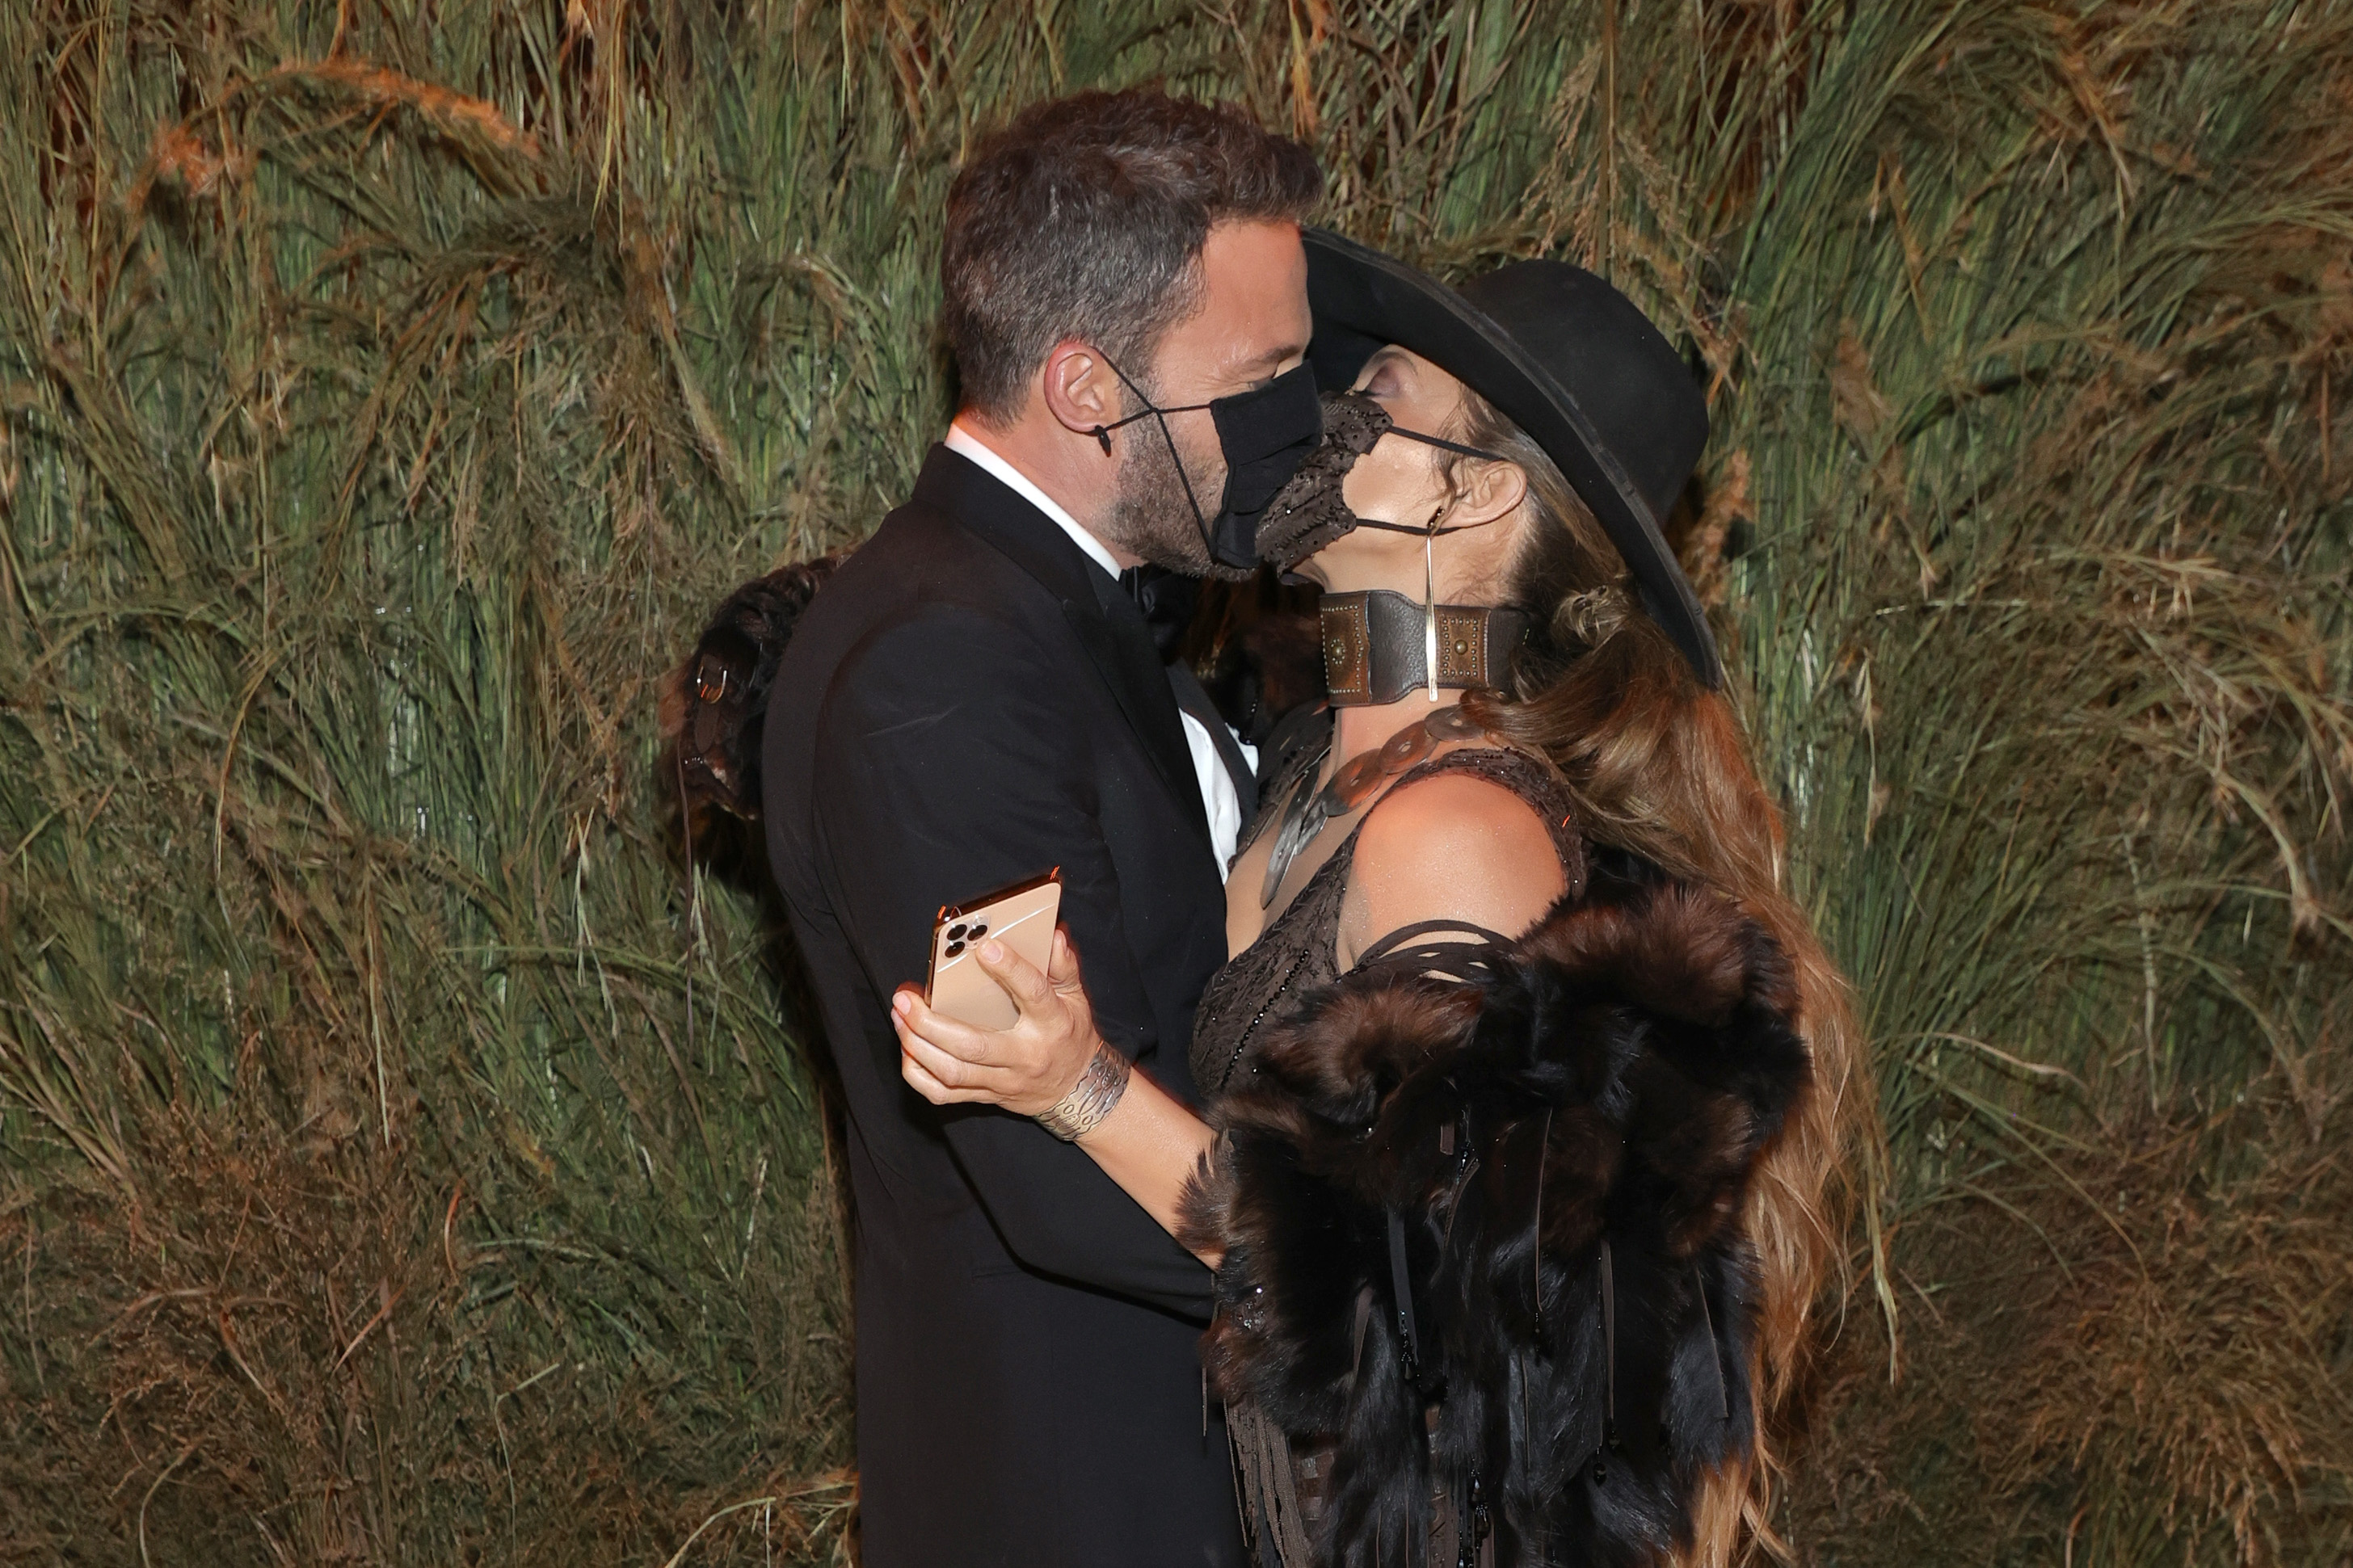 Ben Affleck and Jennifer Lopez attend the 2021 Met Gala at the Metropolitan Museum of Art on September 13, 2021 in New York City.